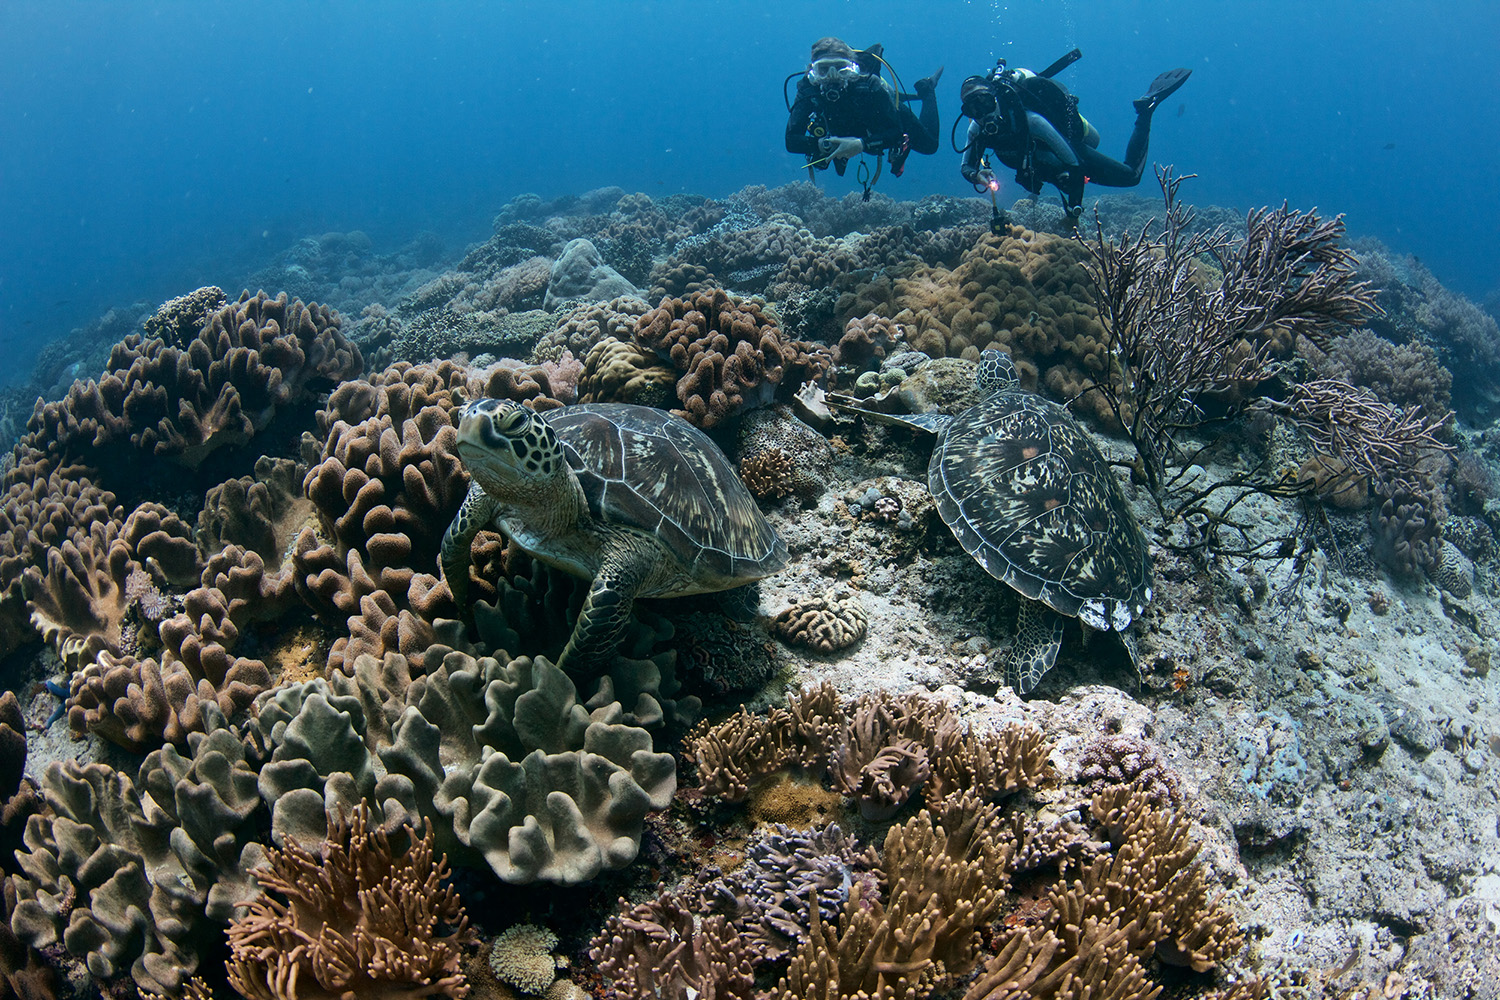 Turtles and corals in Apo island - photo by Bo Mancao